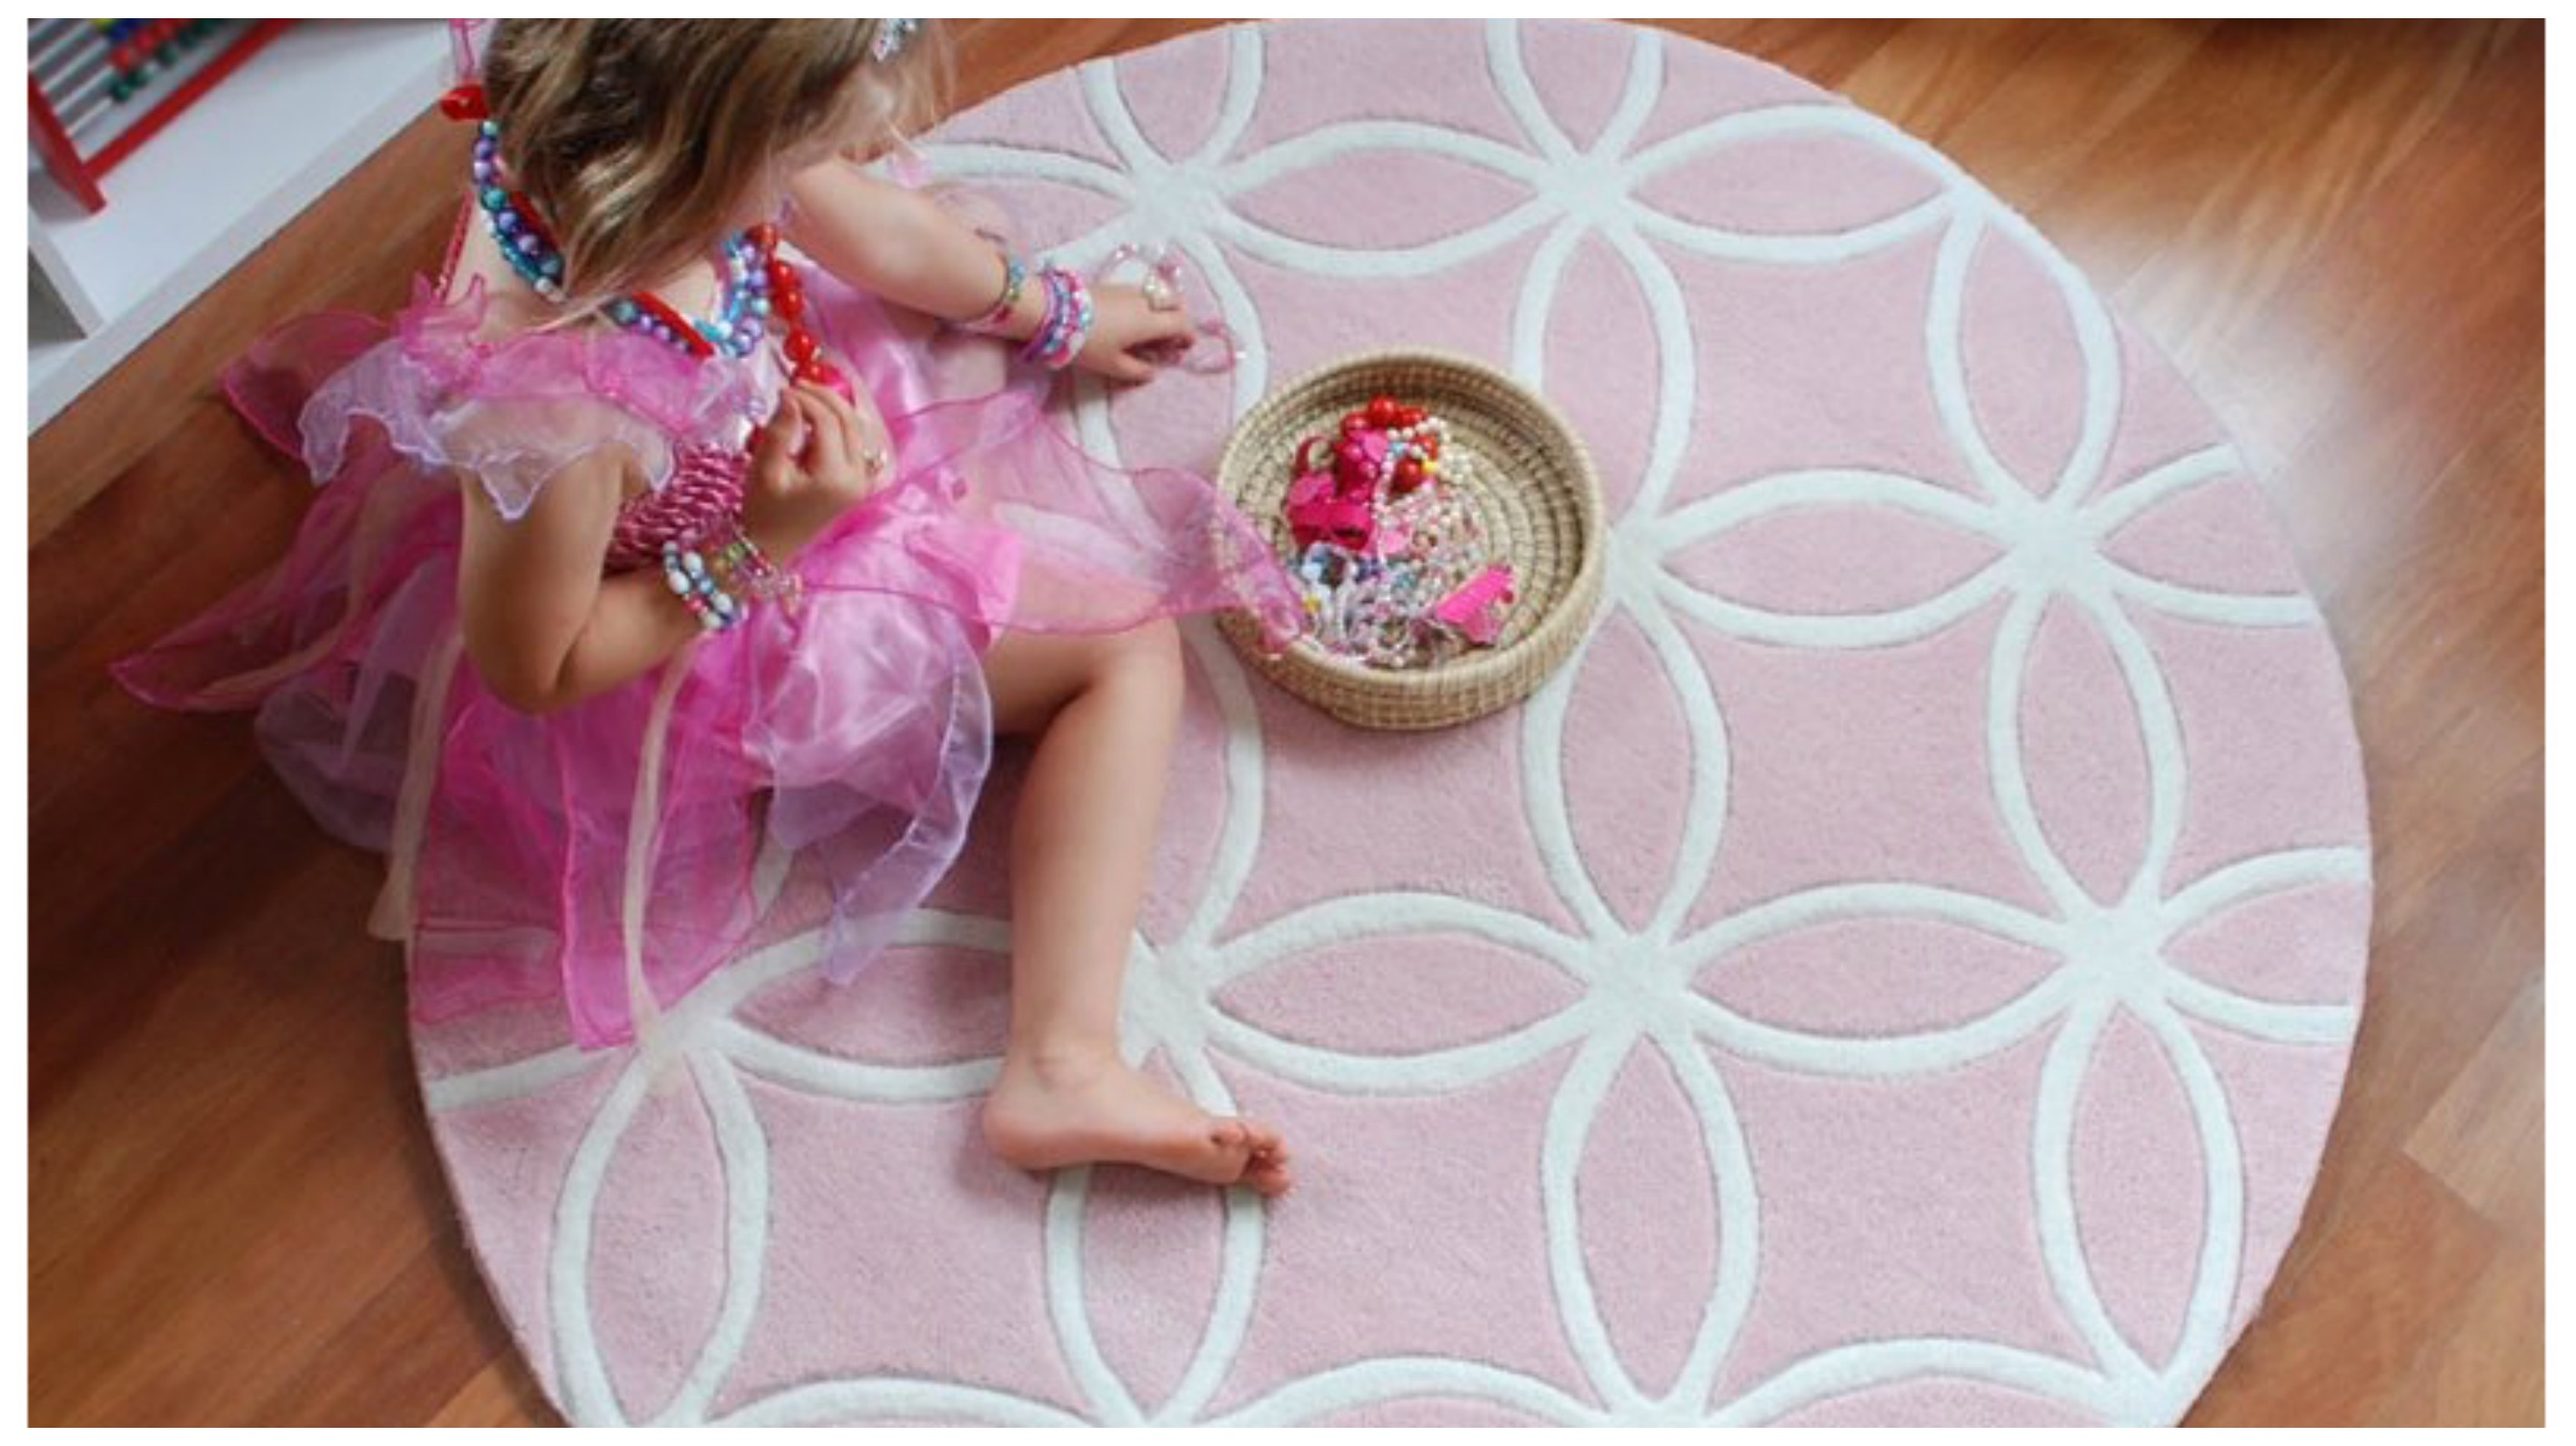 Children's Floor Rugs Childrens Floor Rug Furniture Shop